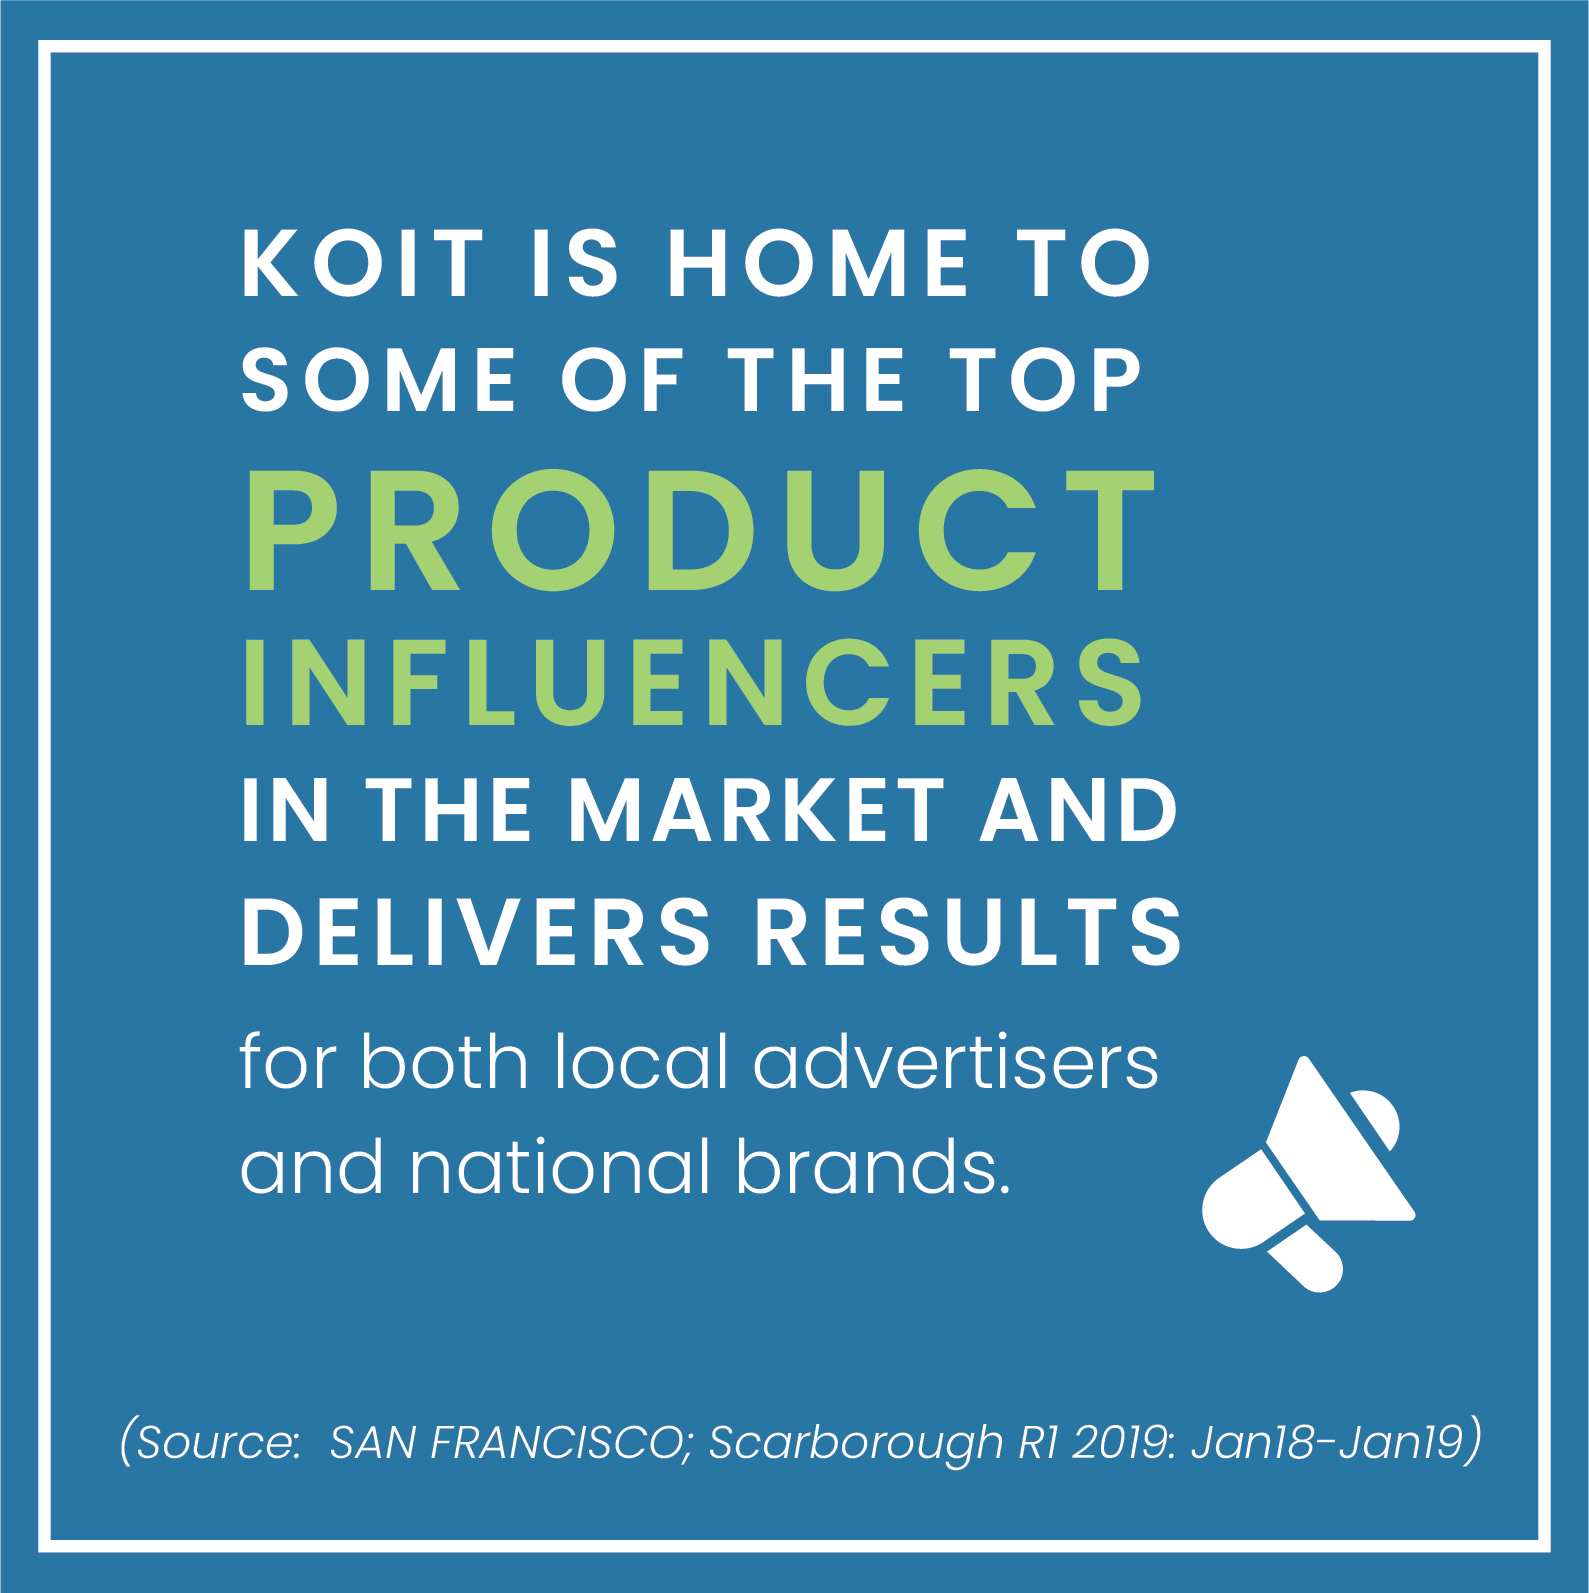 KOIT home to top product influencers